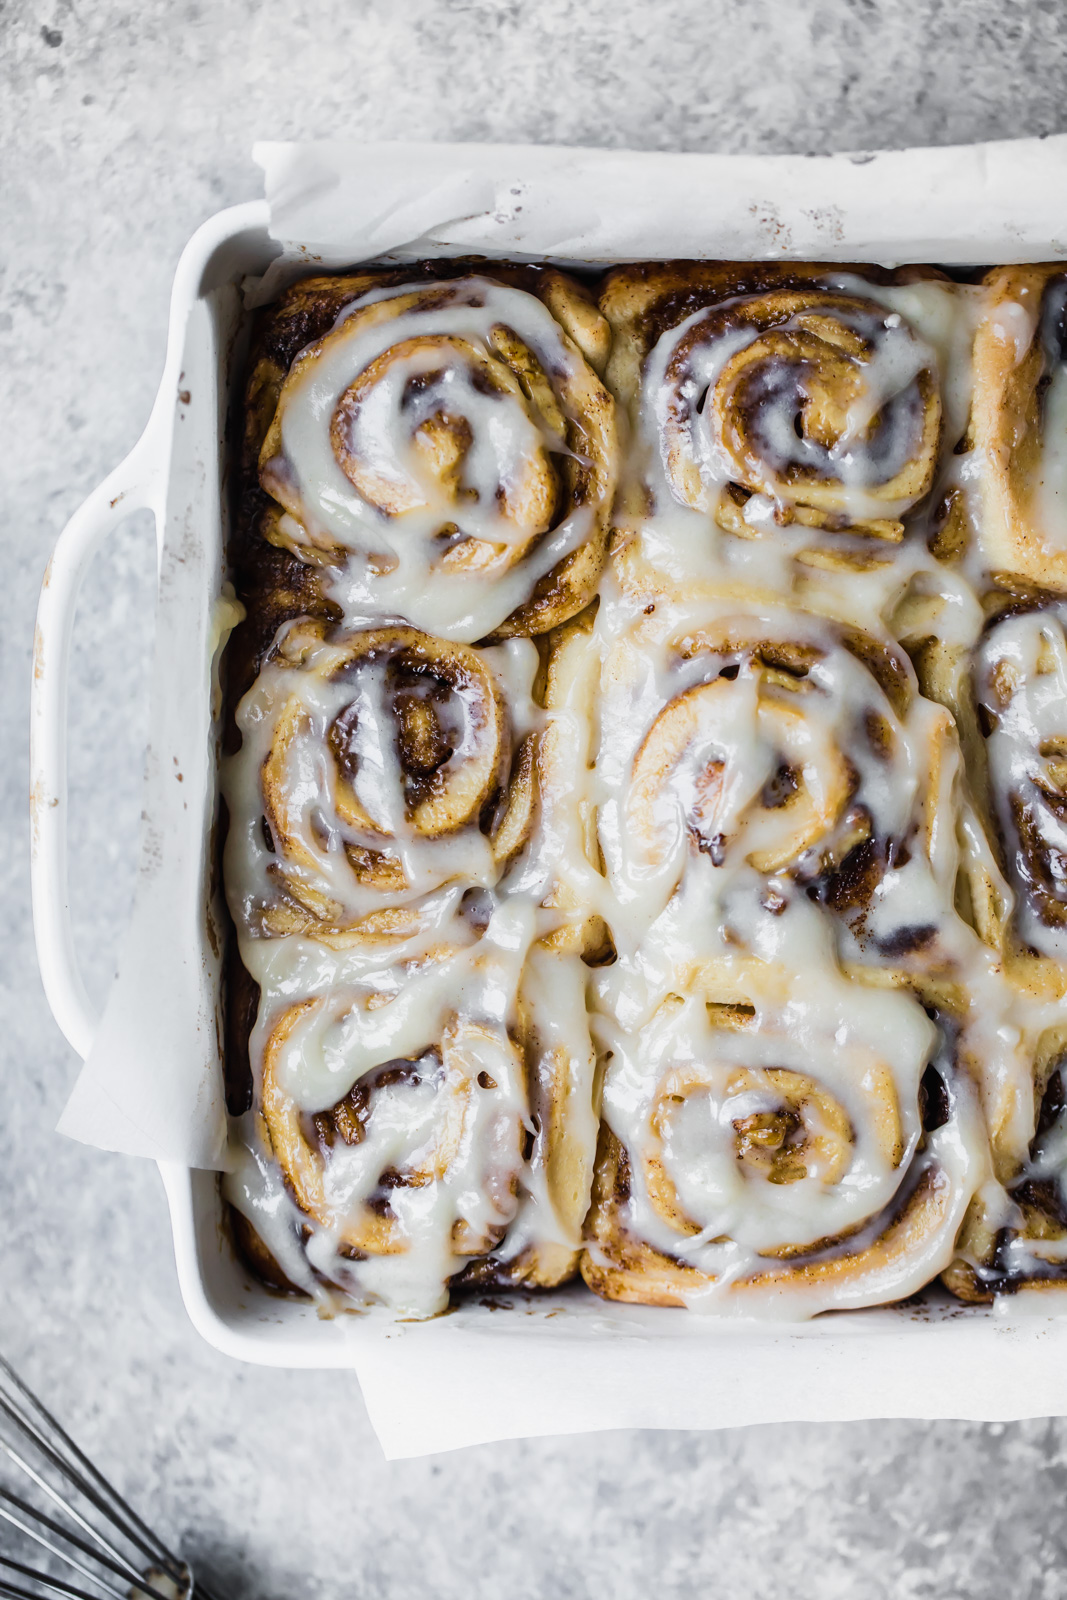 top 25 favorite recipes: vegan banana bread cinnamon rolls in a pan